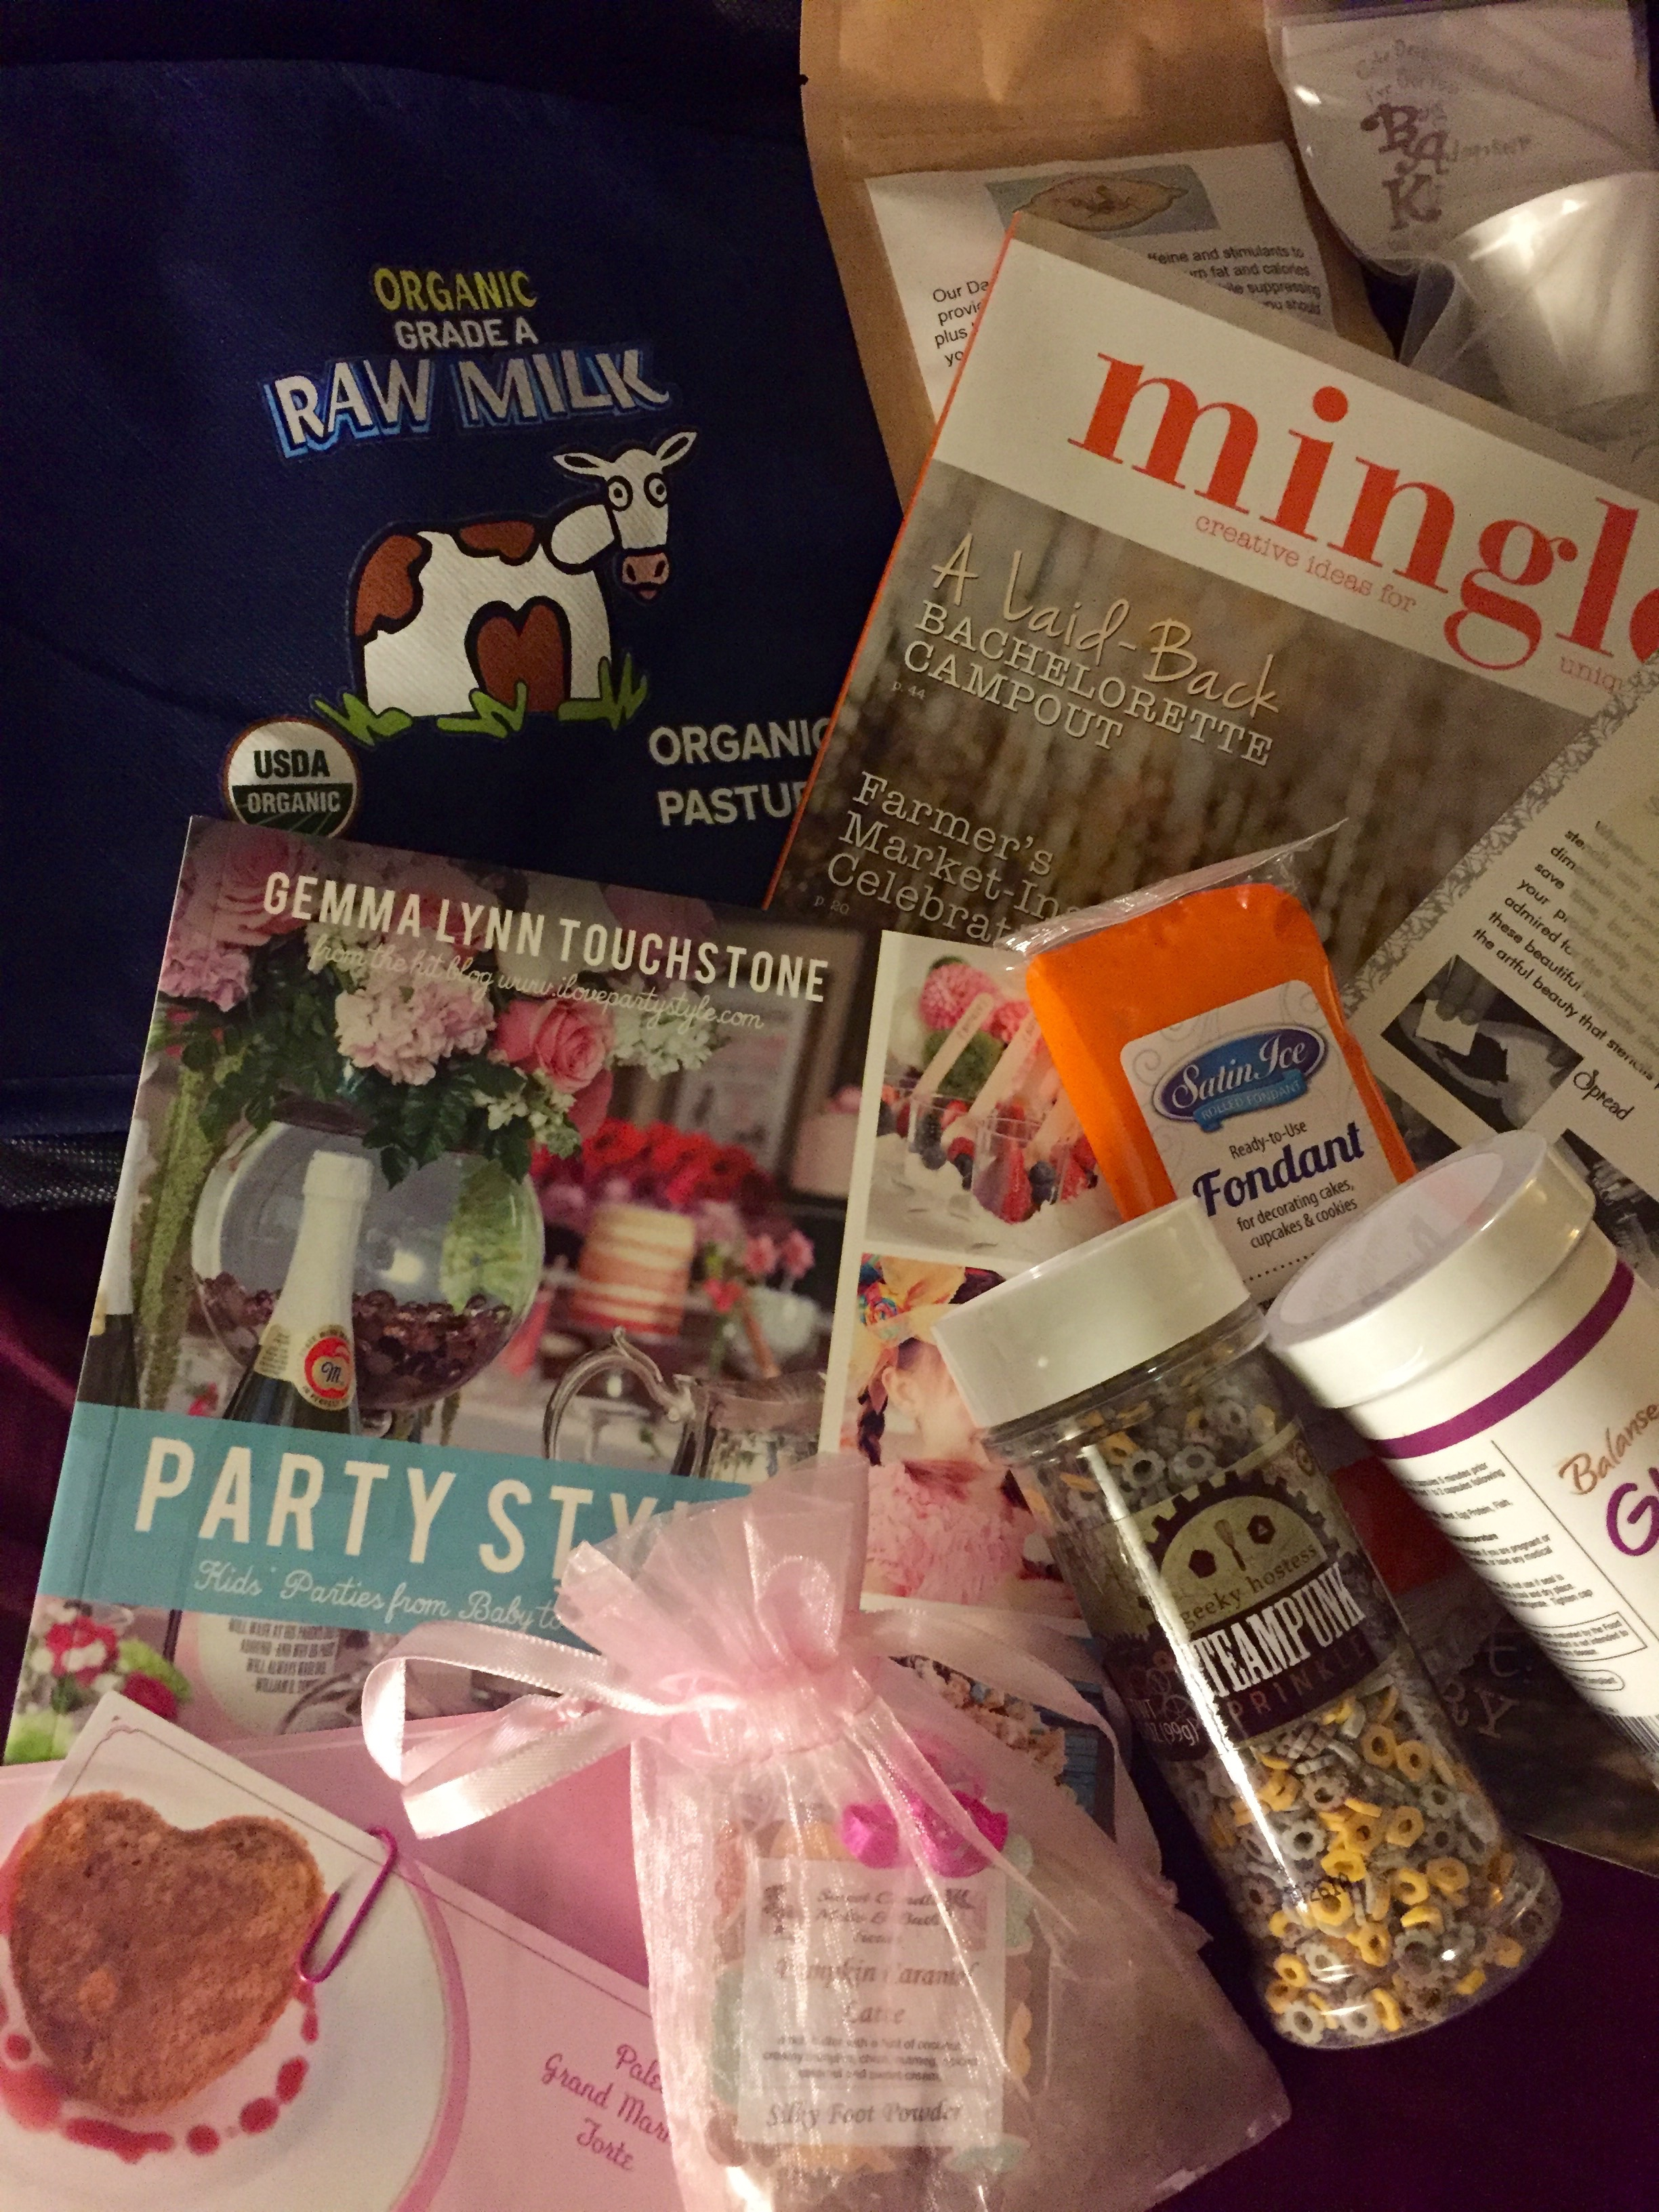 Inside the exclusive Blogger Bag full of lots of goodies, including